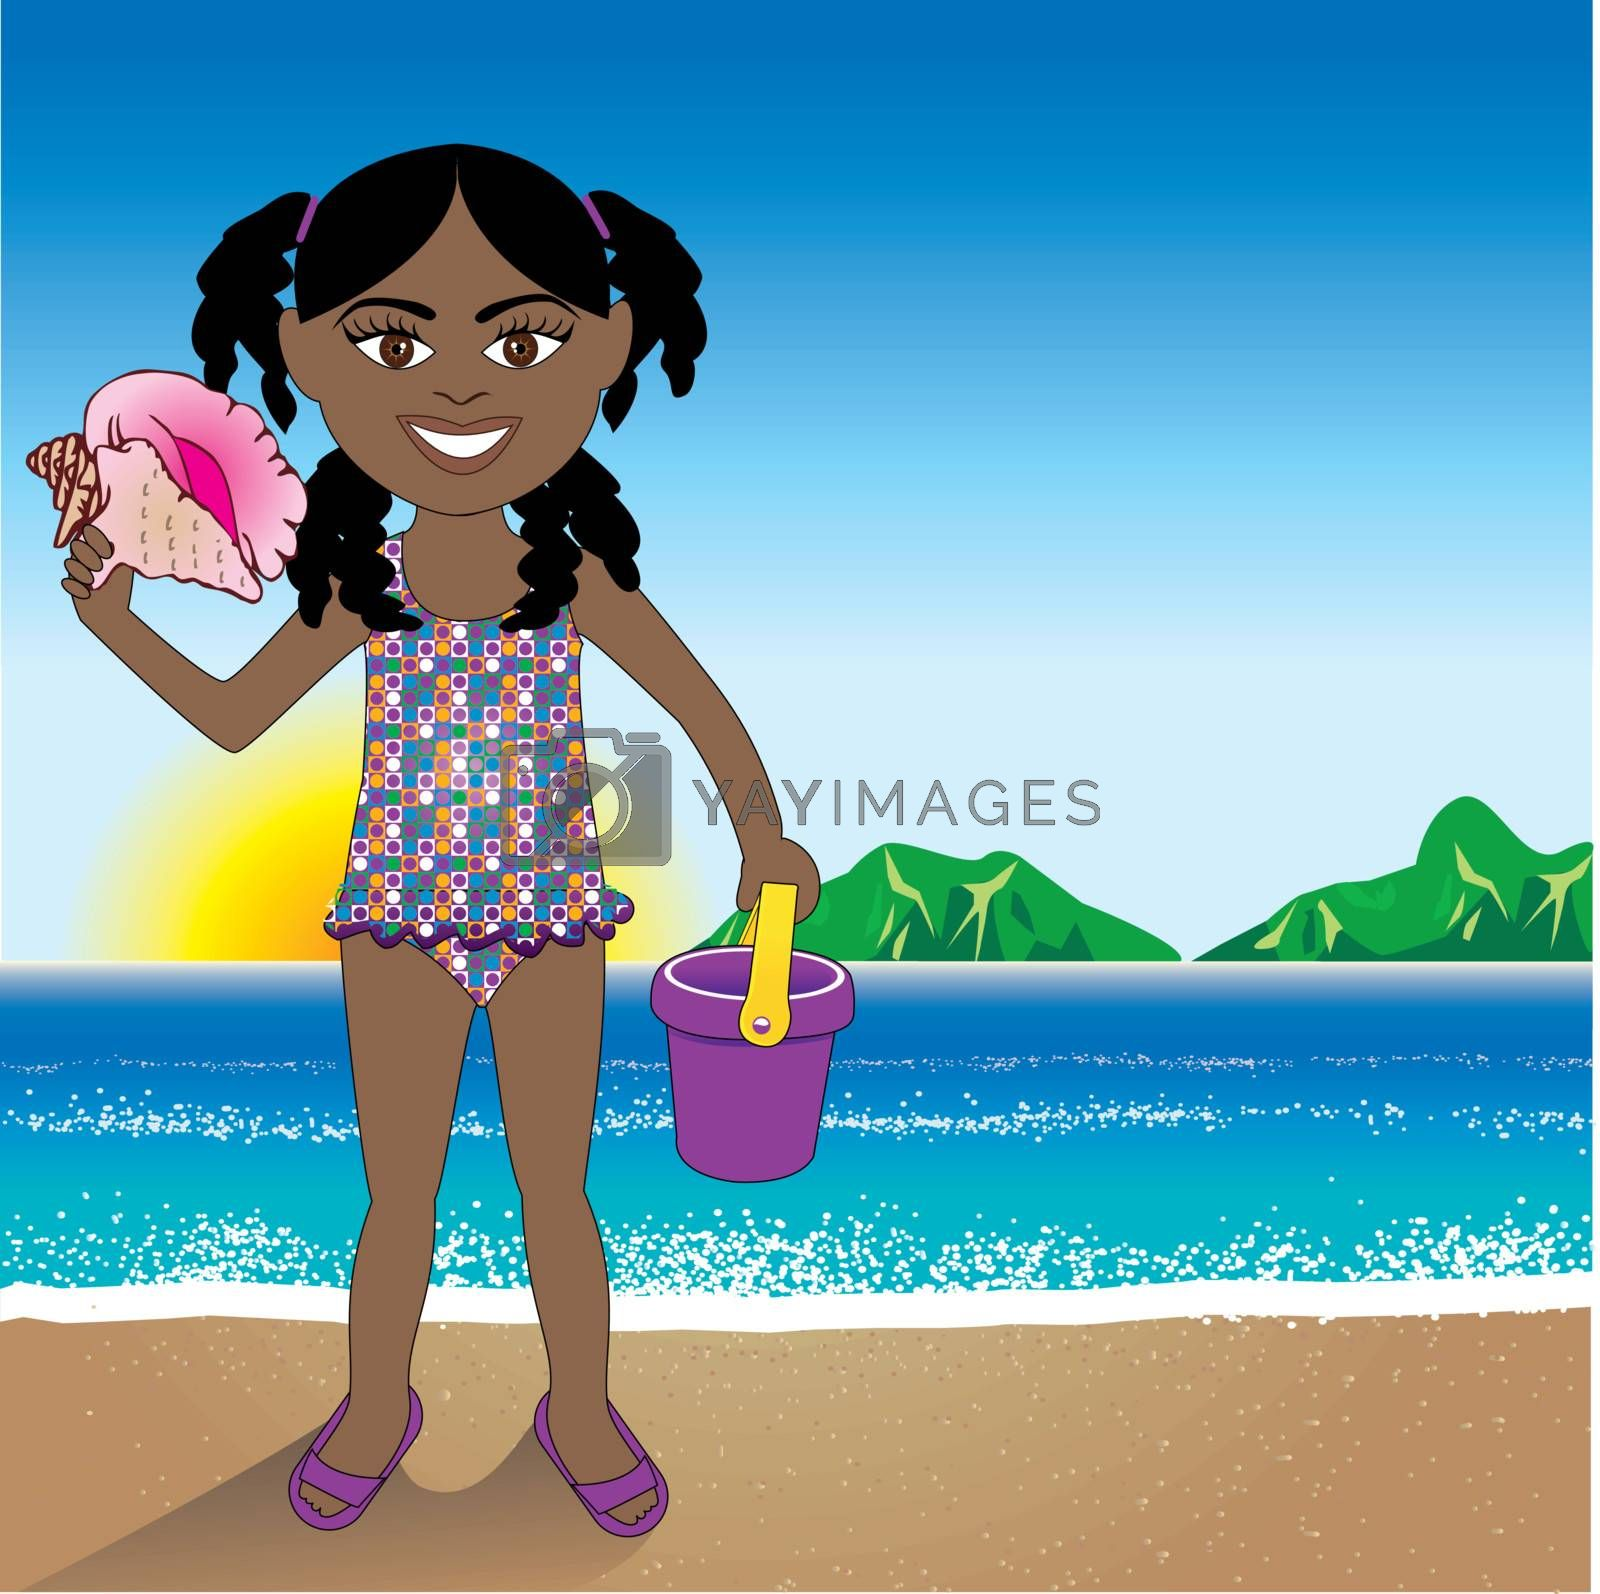 Vector Illustration of a Conch Shell girl with a Beach Background.